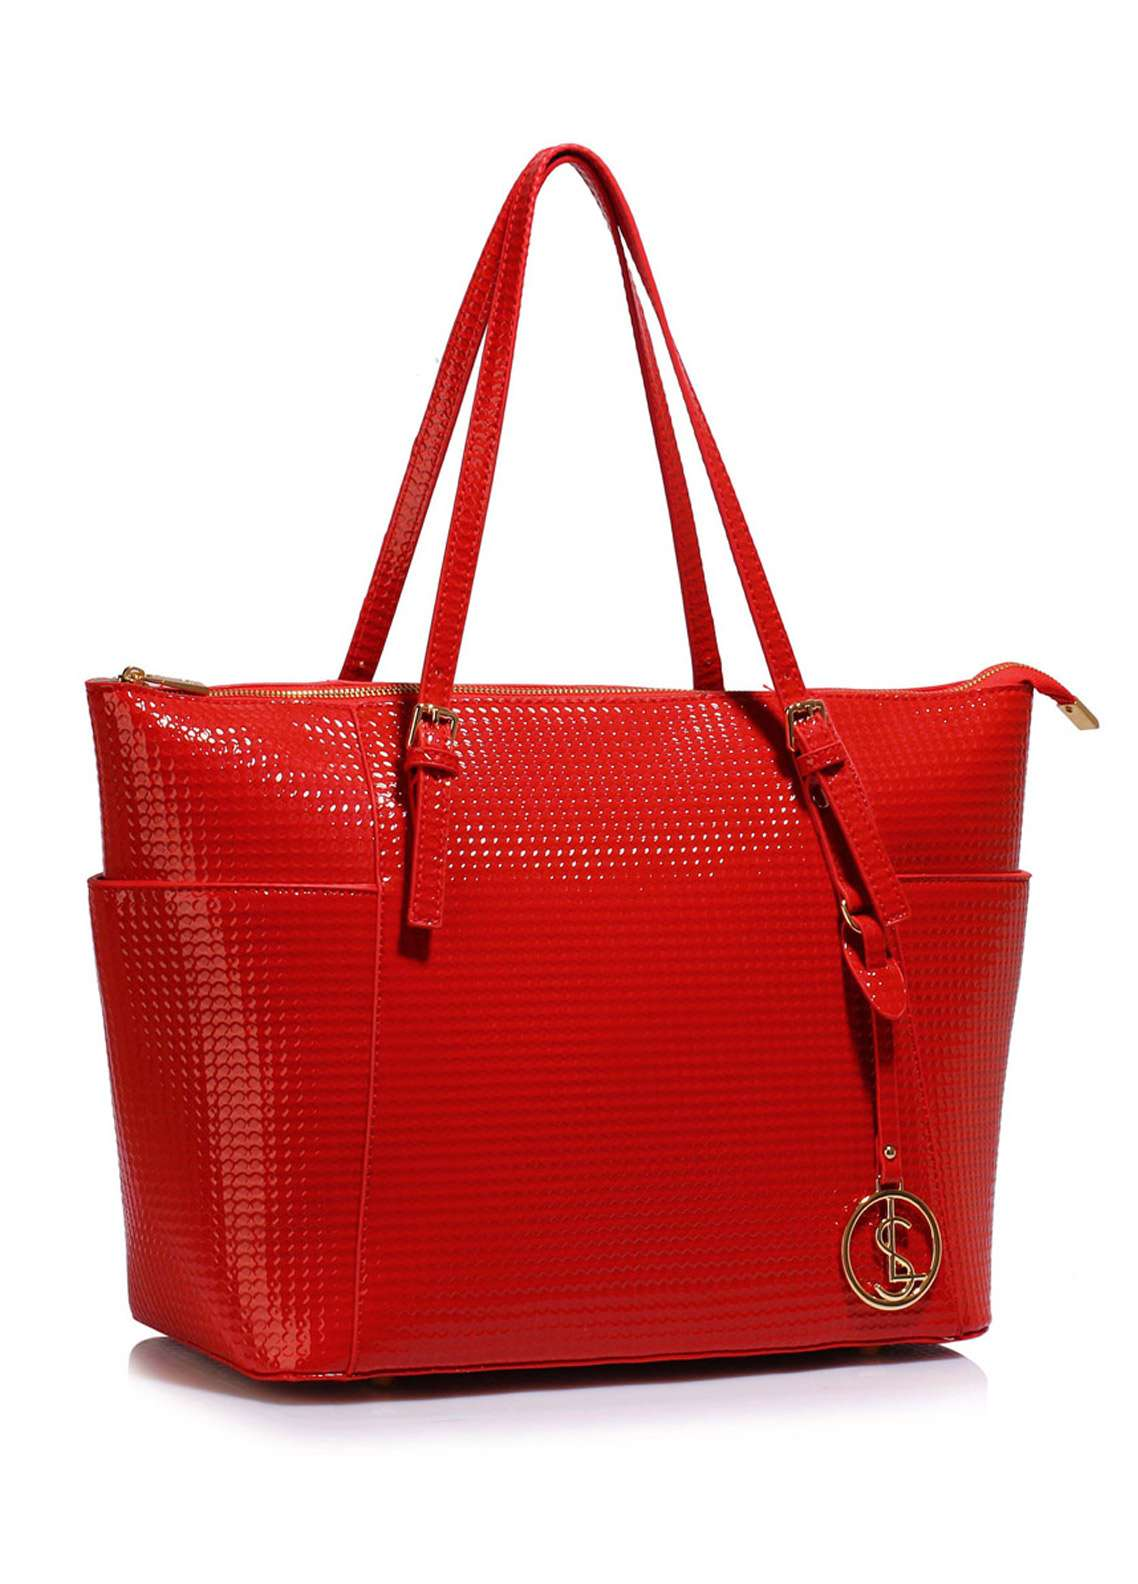 Leesun London Faux Leather Tote Bags for Women Red